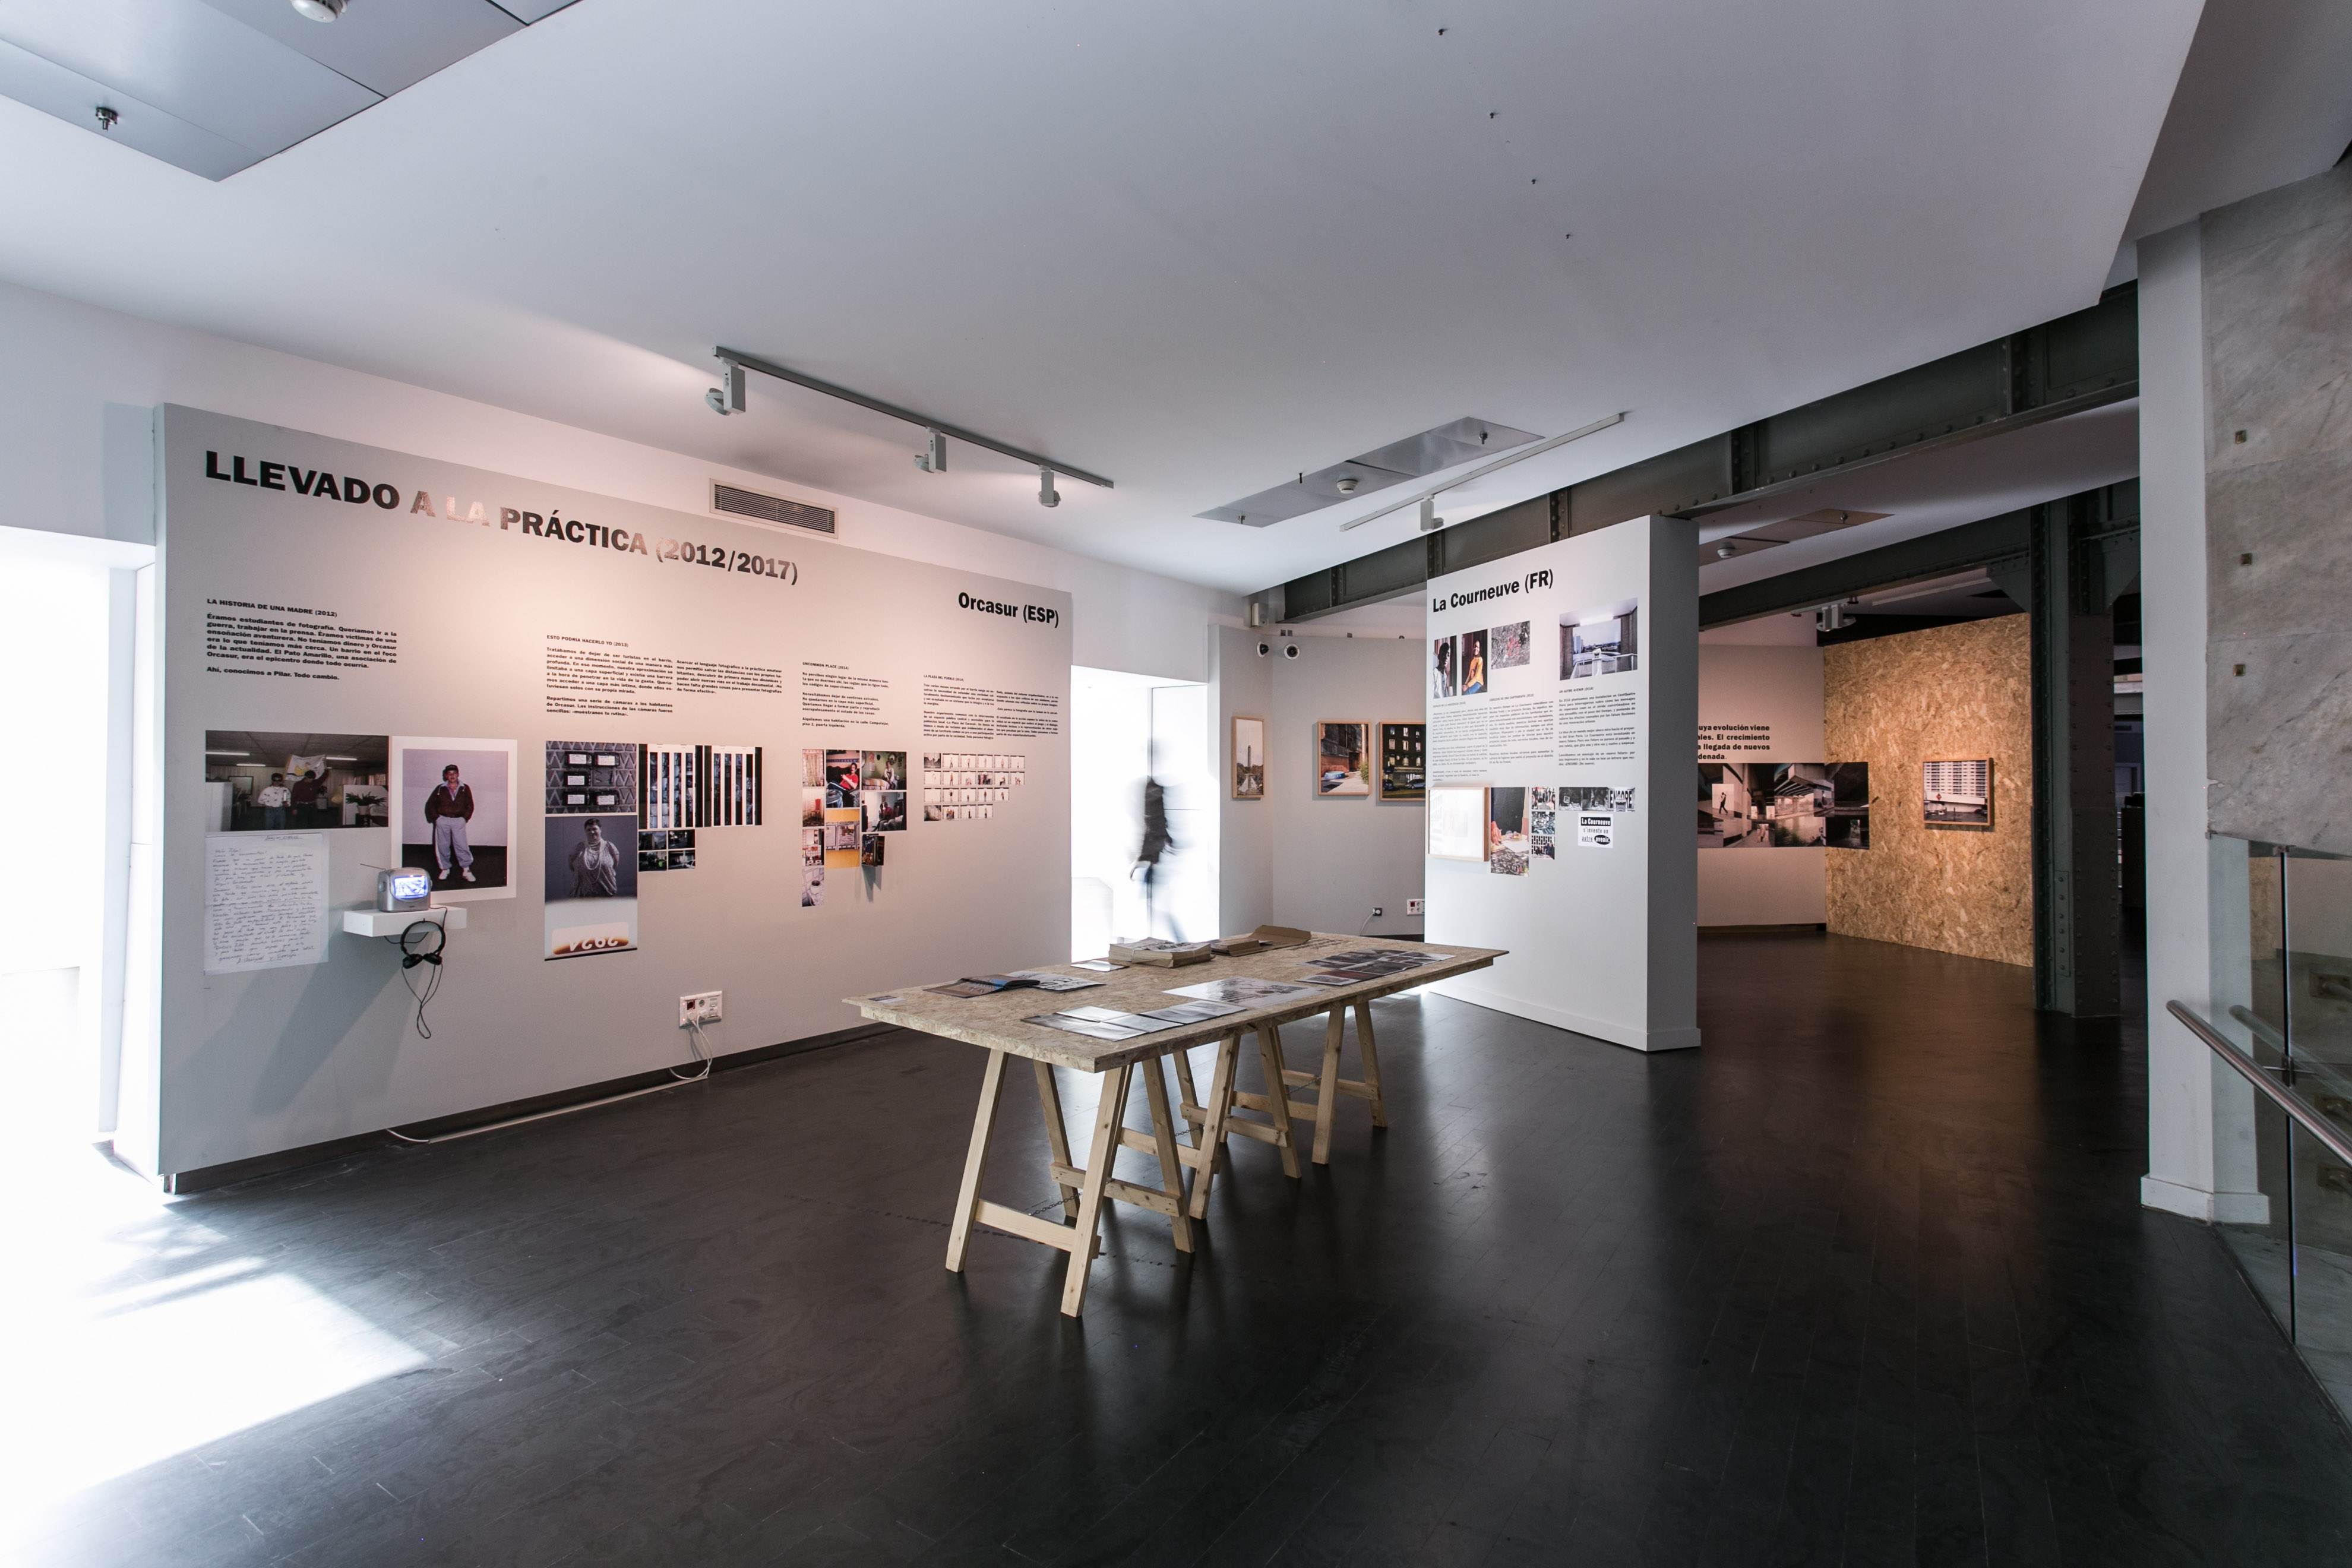 CentroCentro-lamemeindifference-004